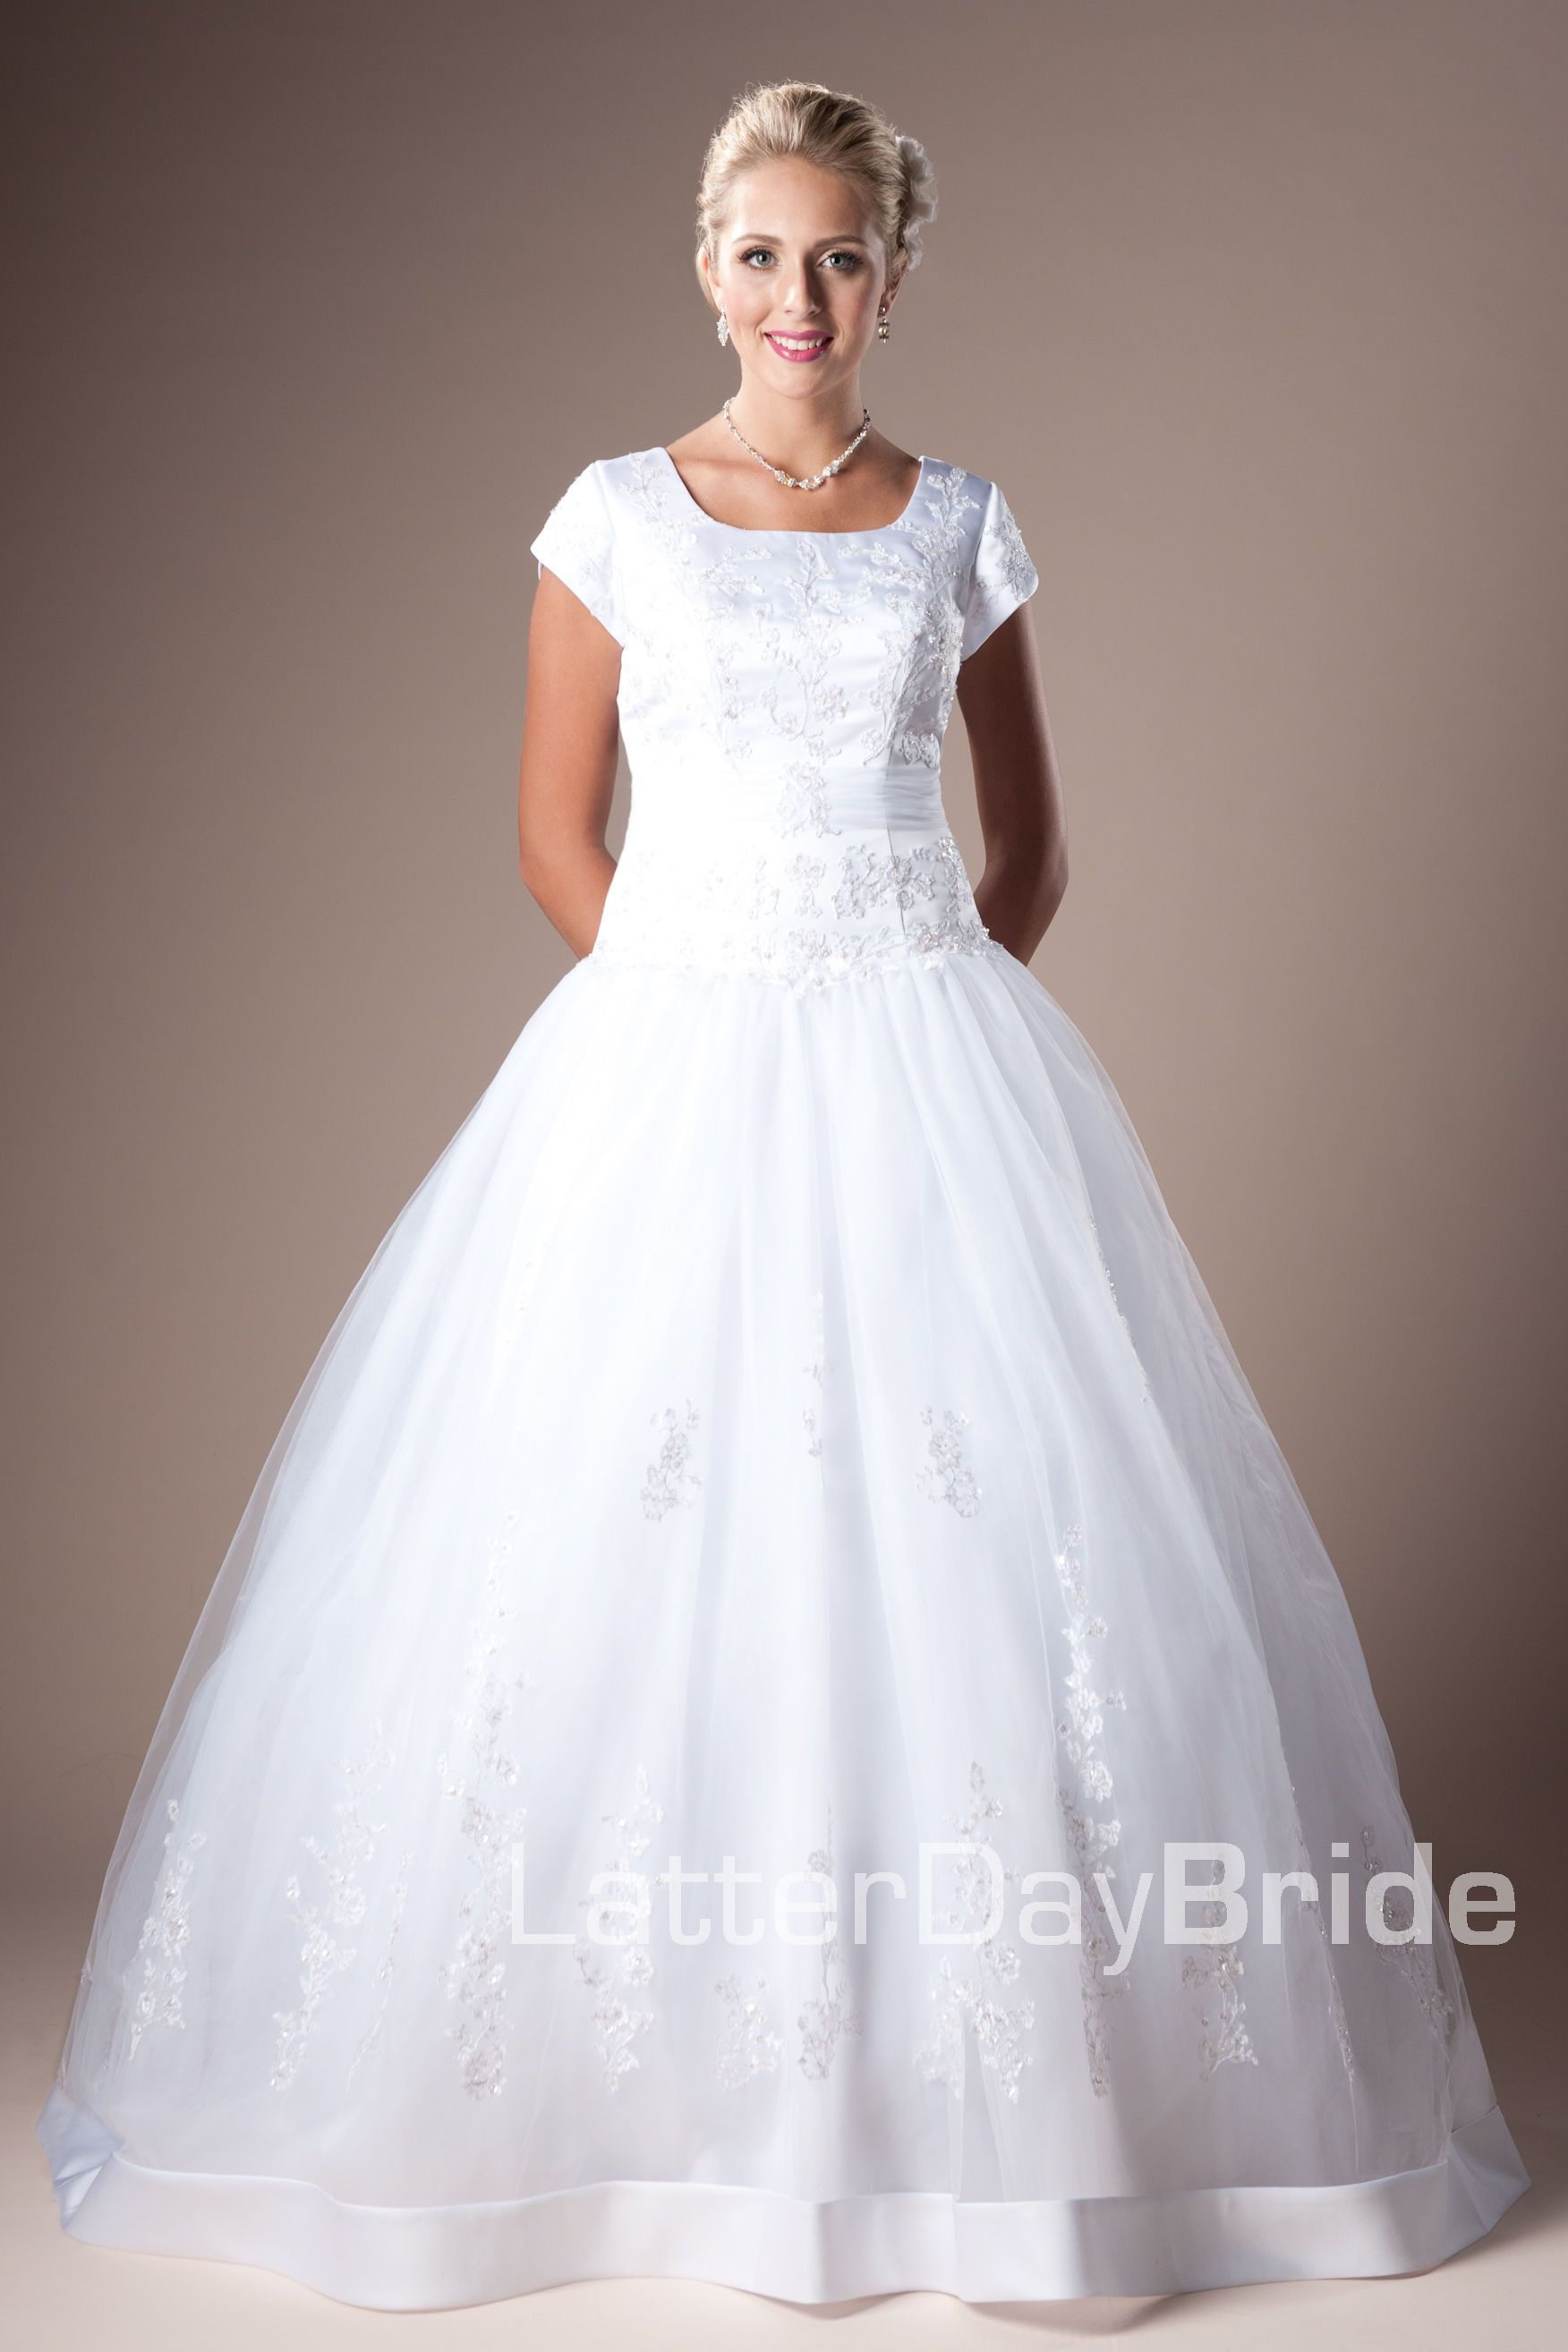 modest wedding dress new haven latterdaybride prom